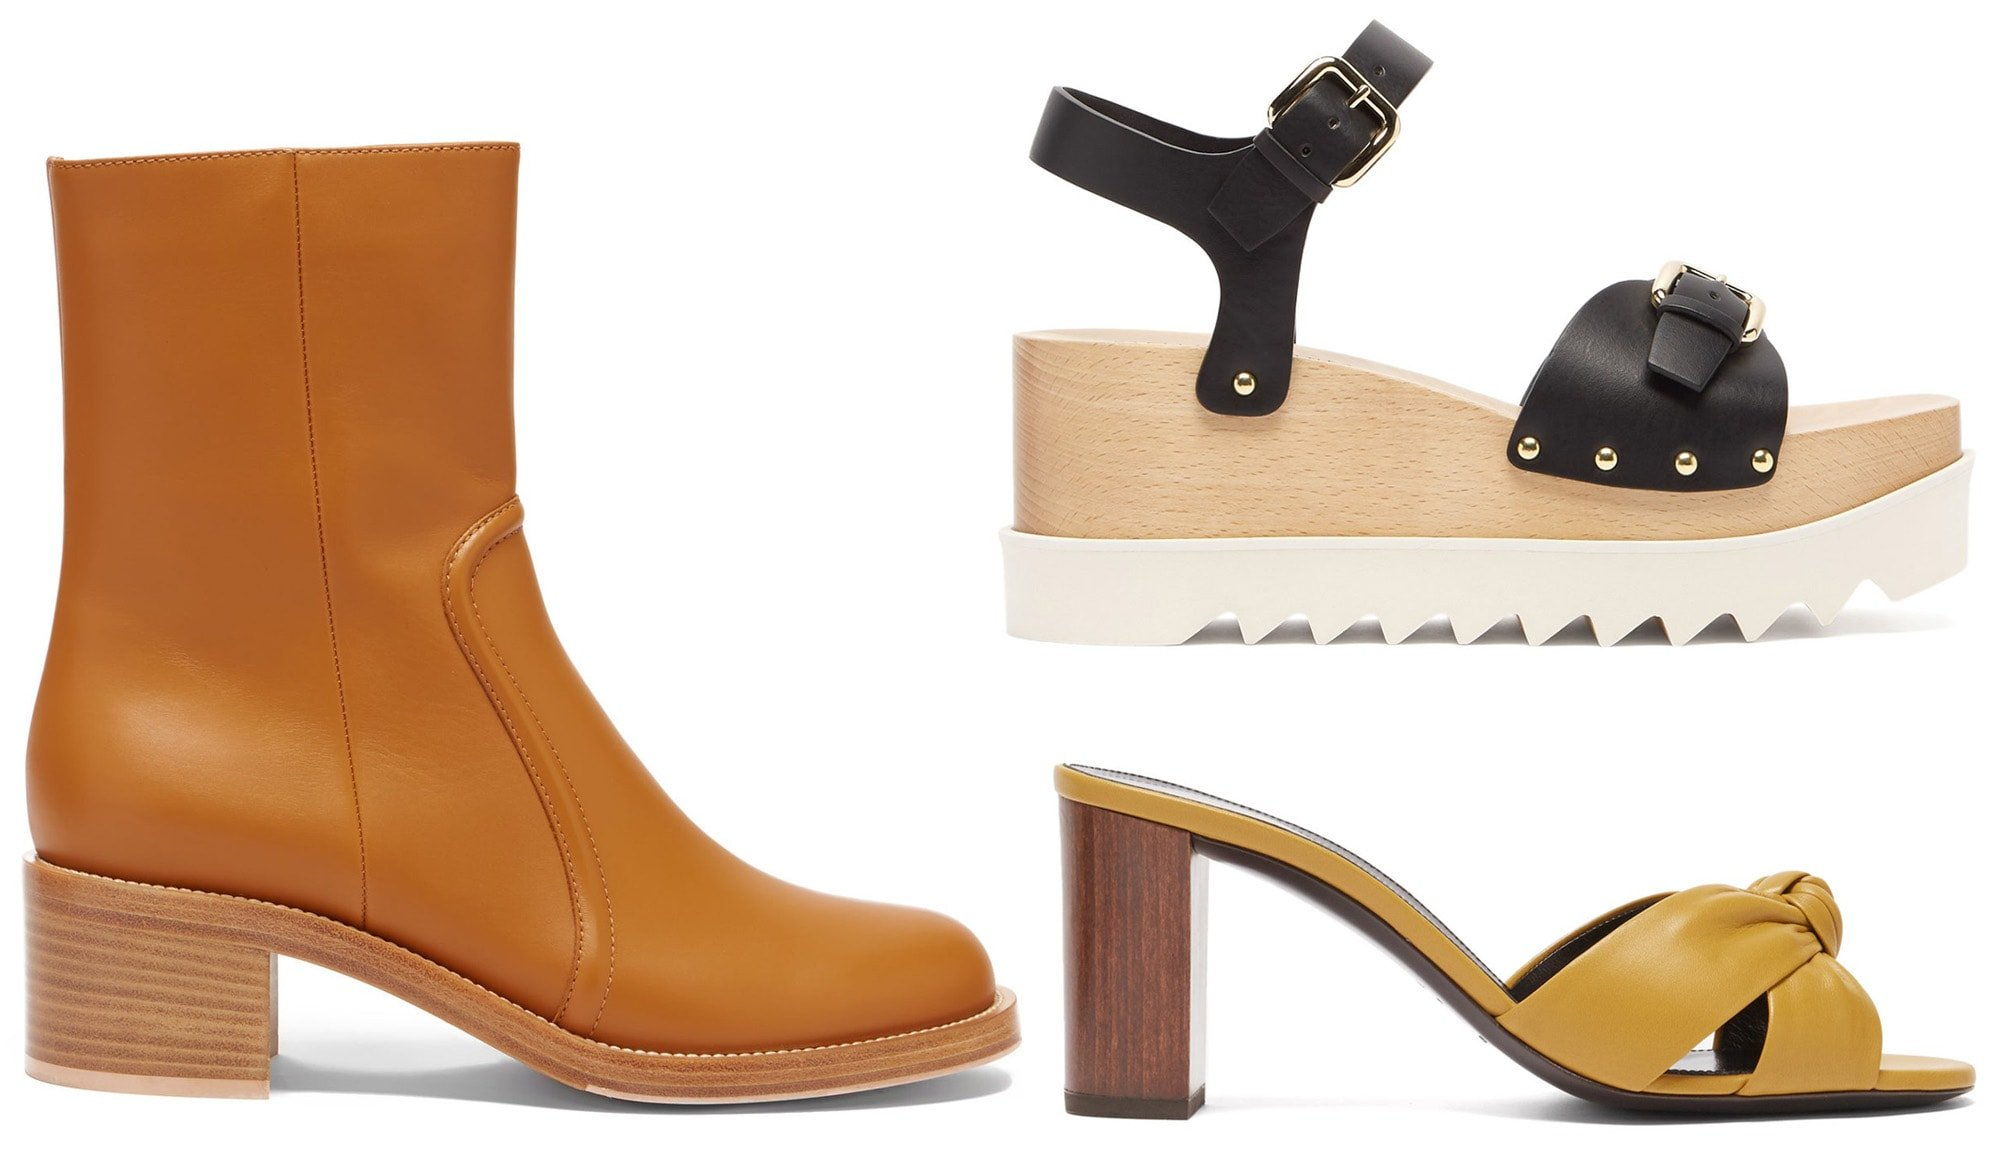 Wooden heels are not only durable but they are also lightweight and provide stability